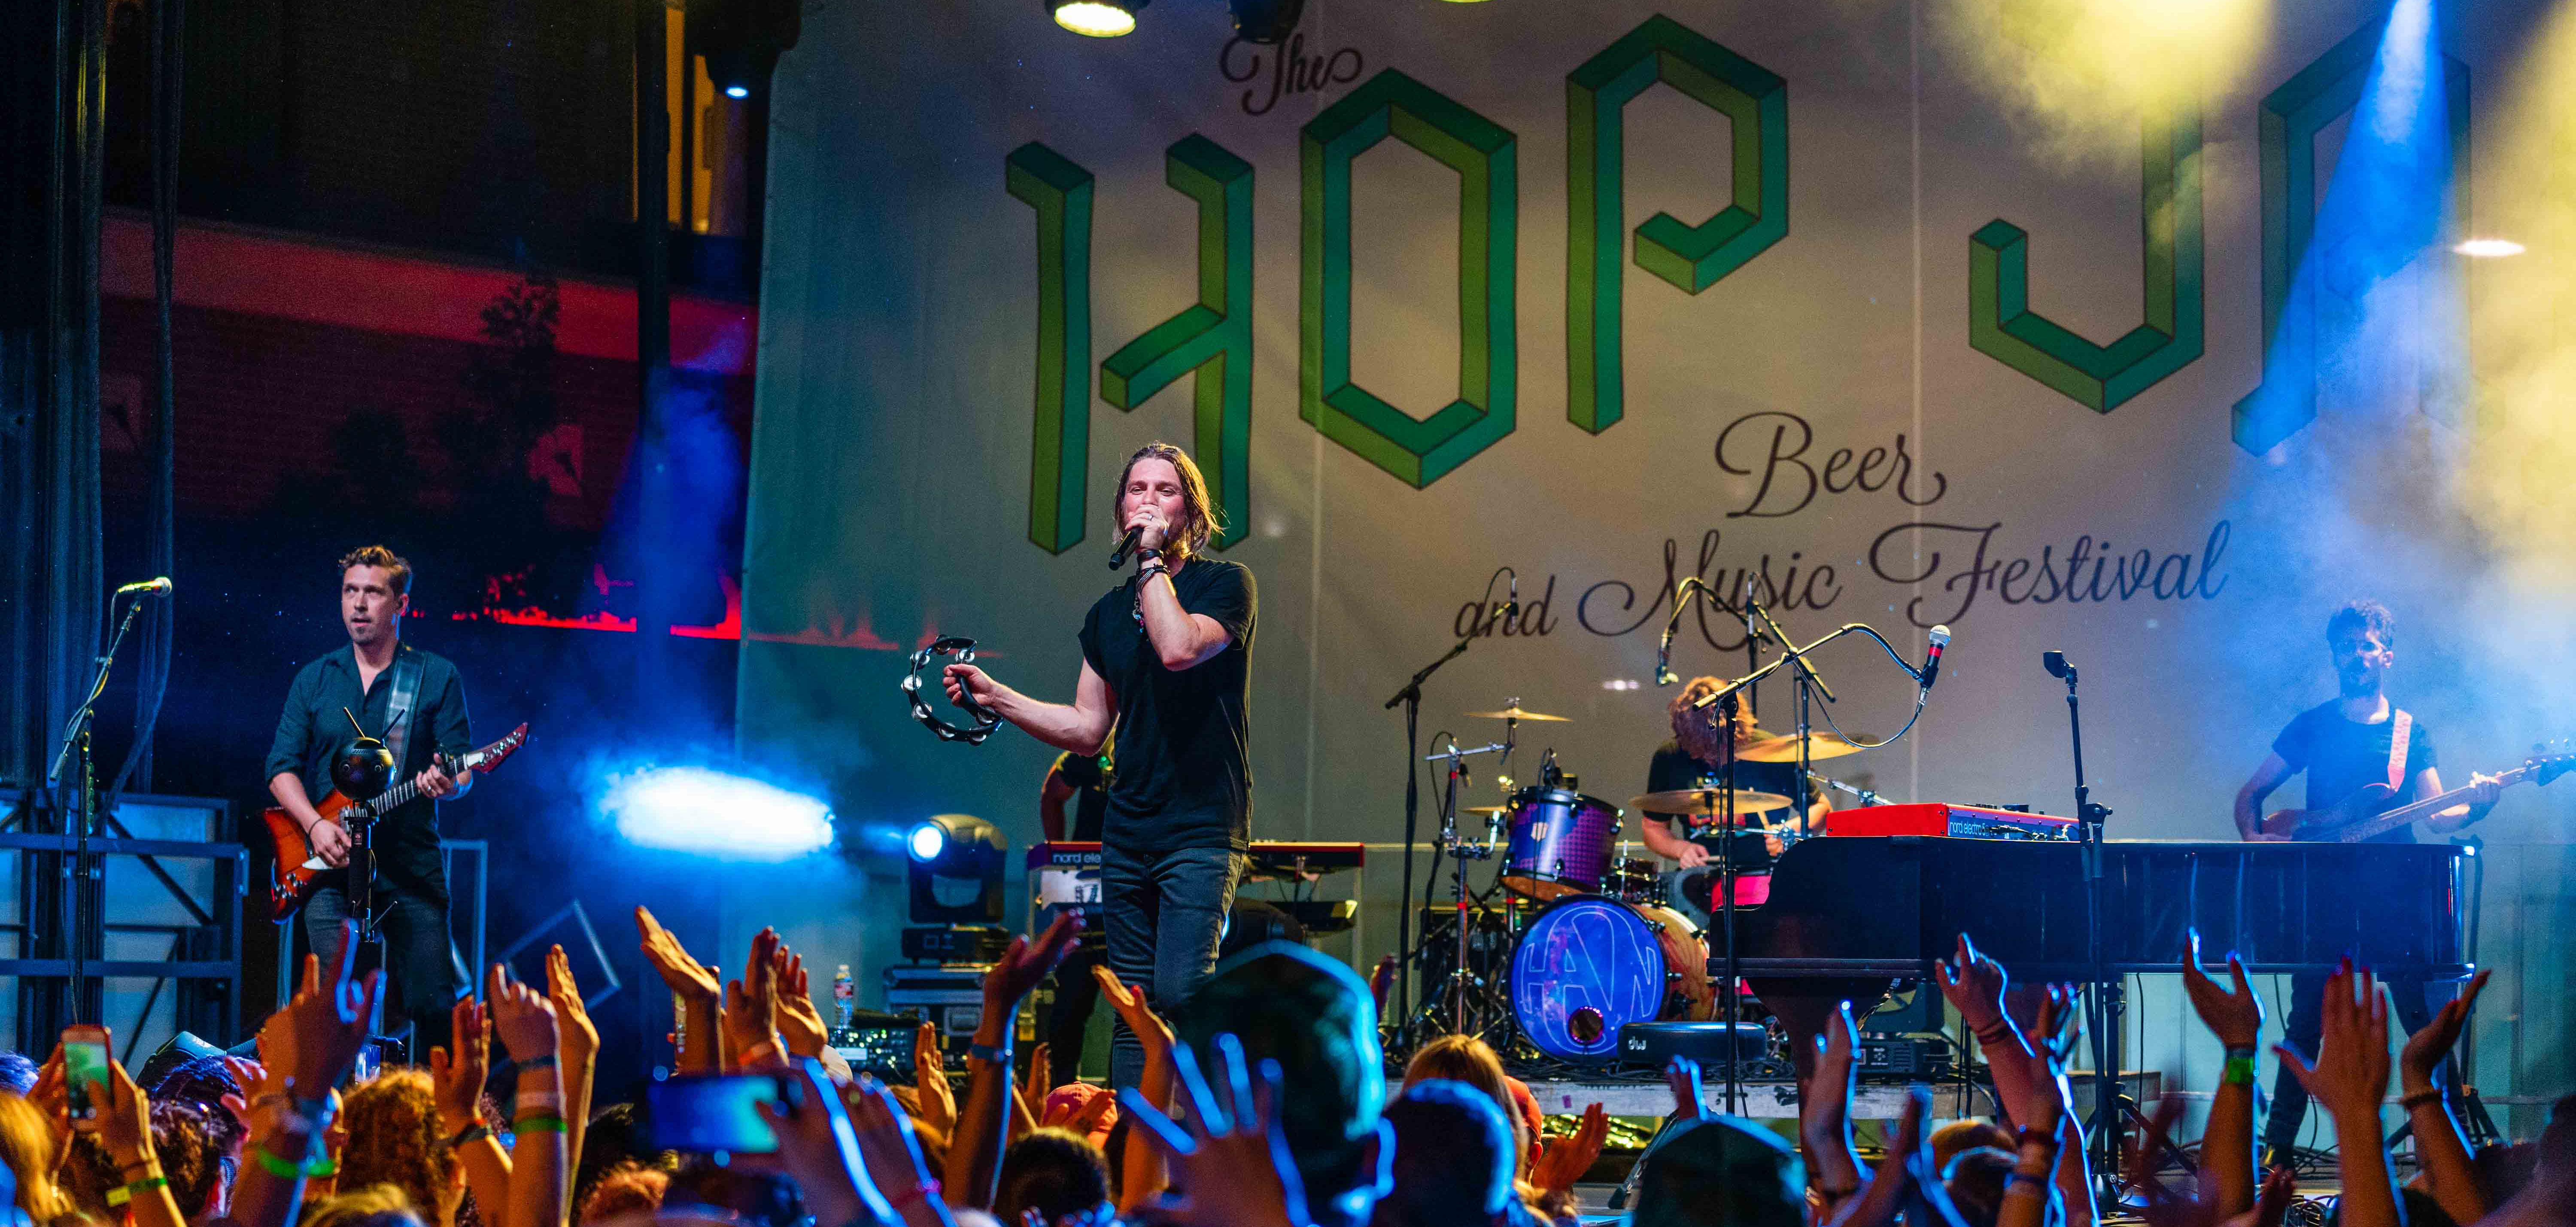 Hanson performing at their own music festival, Hop Jam, in downtown Tulsa's Arts District.